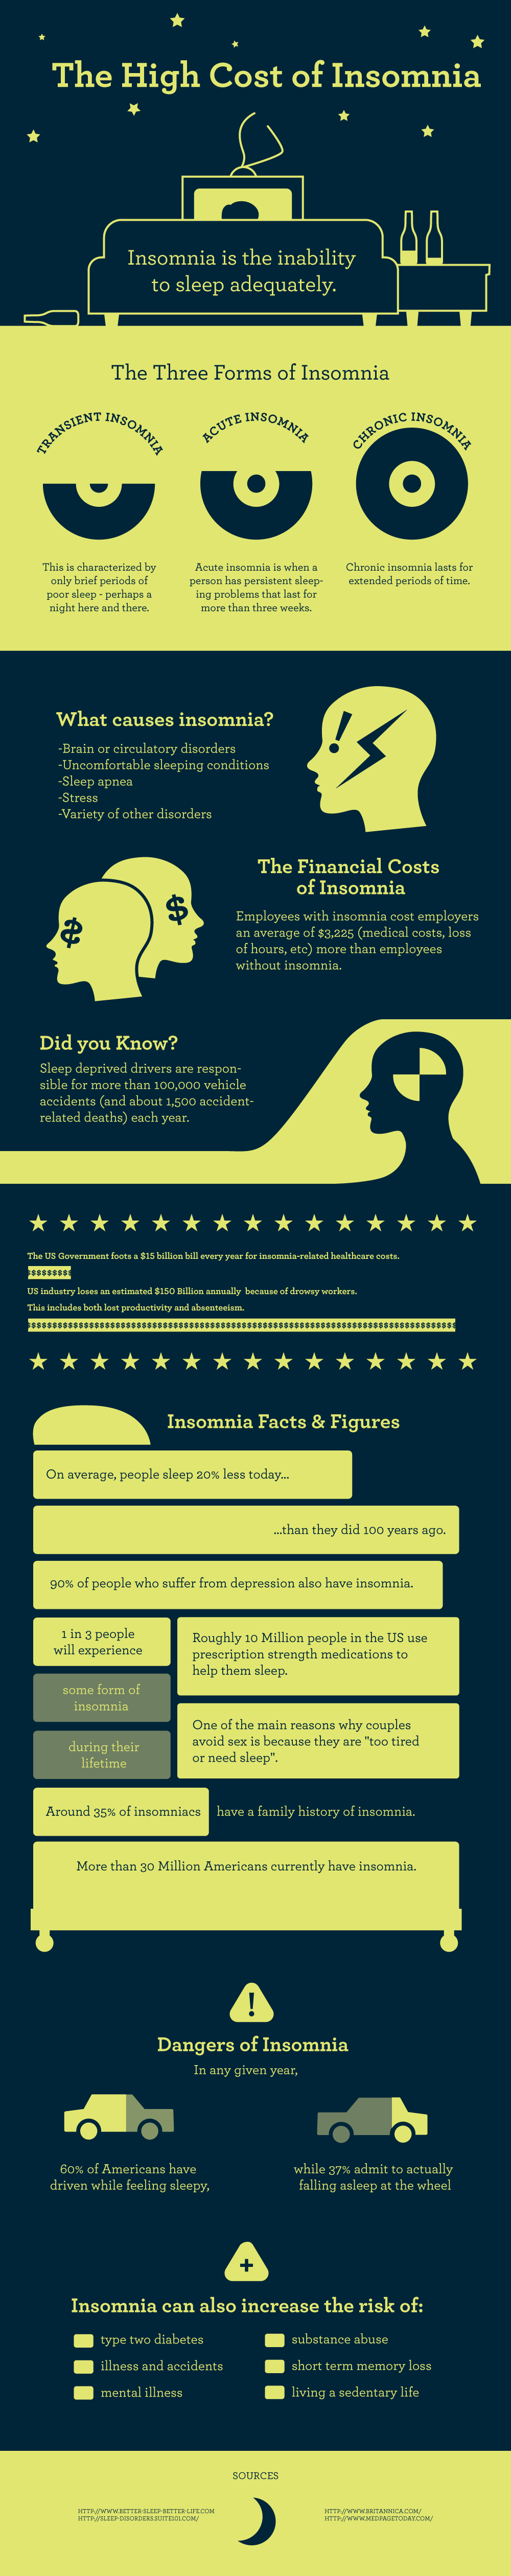 cause effect essay insomnia New studies show insomnia could be a cause of depression insomnia and depression: cause vs effect new studies show insomnia could be a cause of depression.